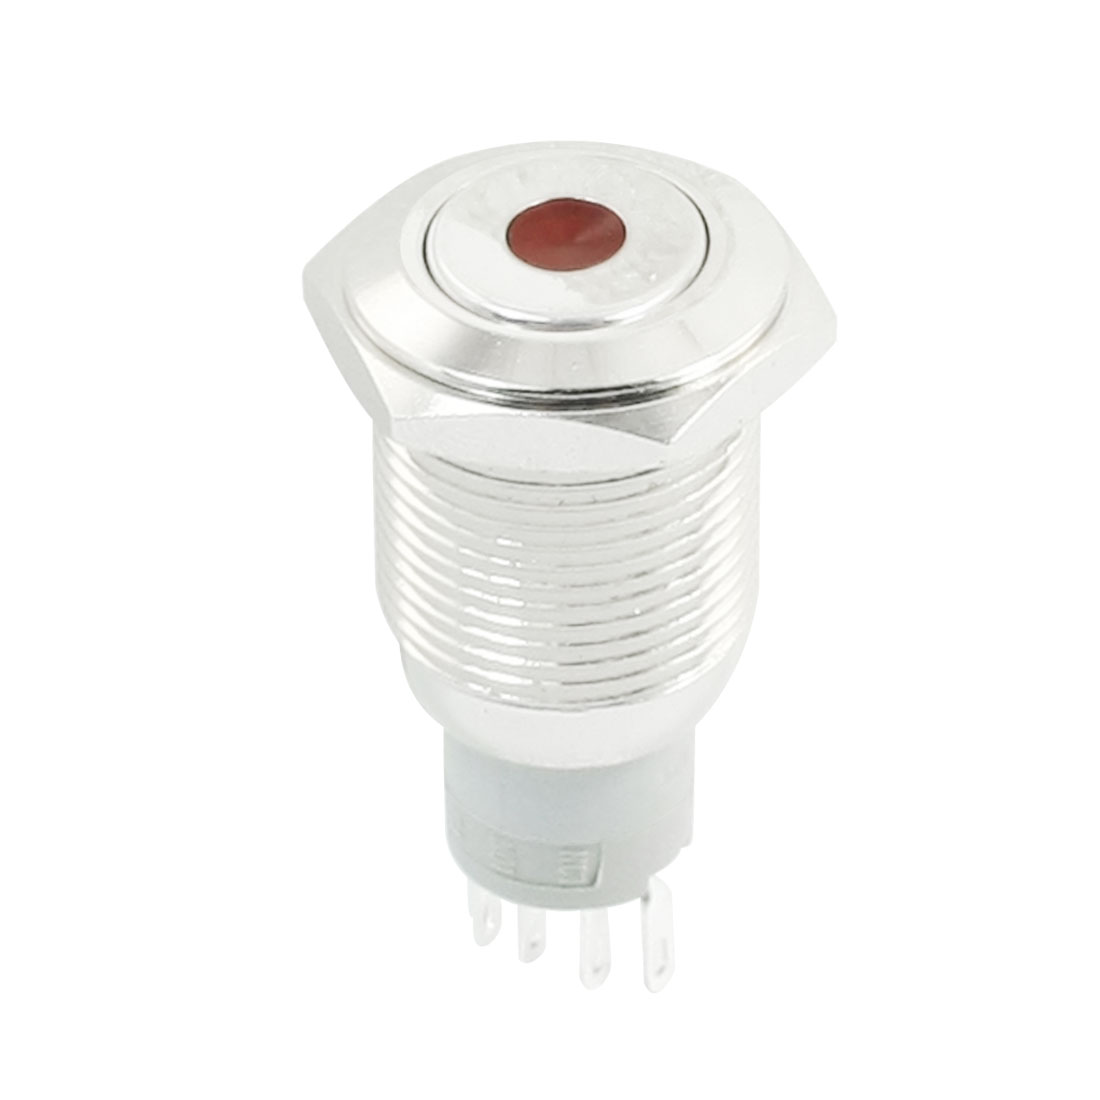 DC12V Red Indicator Dot LED SPDT 1NO 1NC 5Pins 16mm Panel Mounting Momentary Metal Push Button Switch